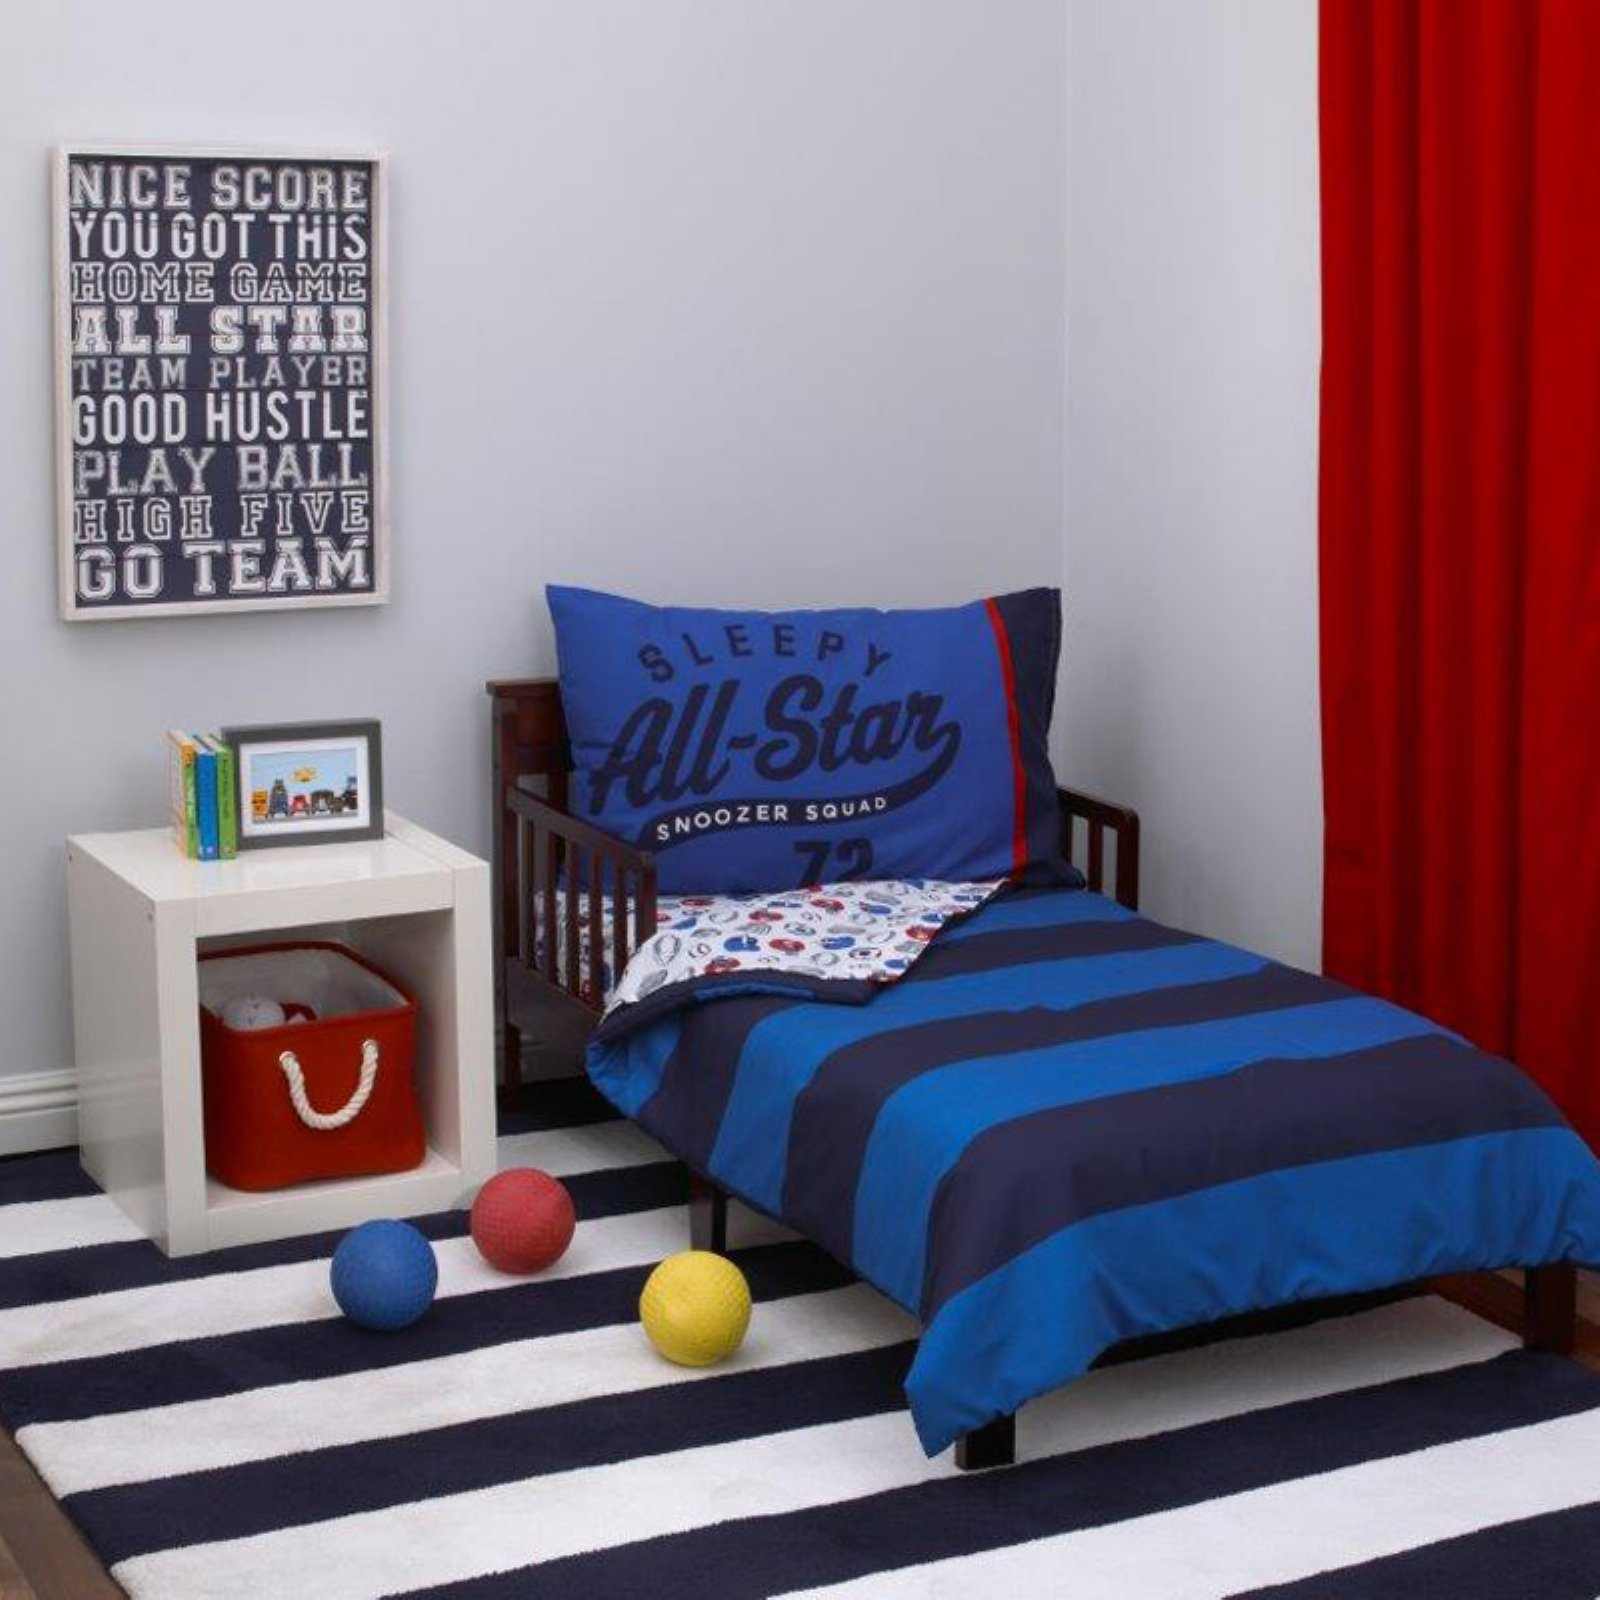 All Star 4-Piece Toddler Bed Set by Carters